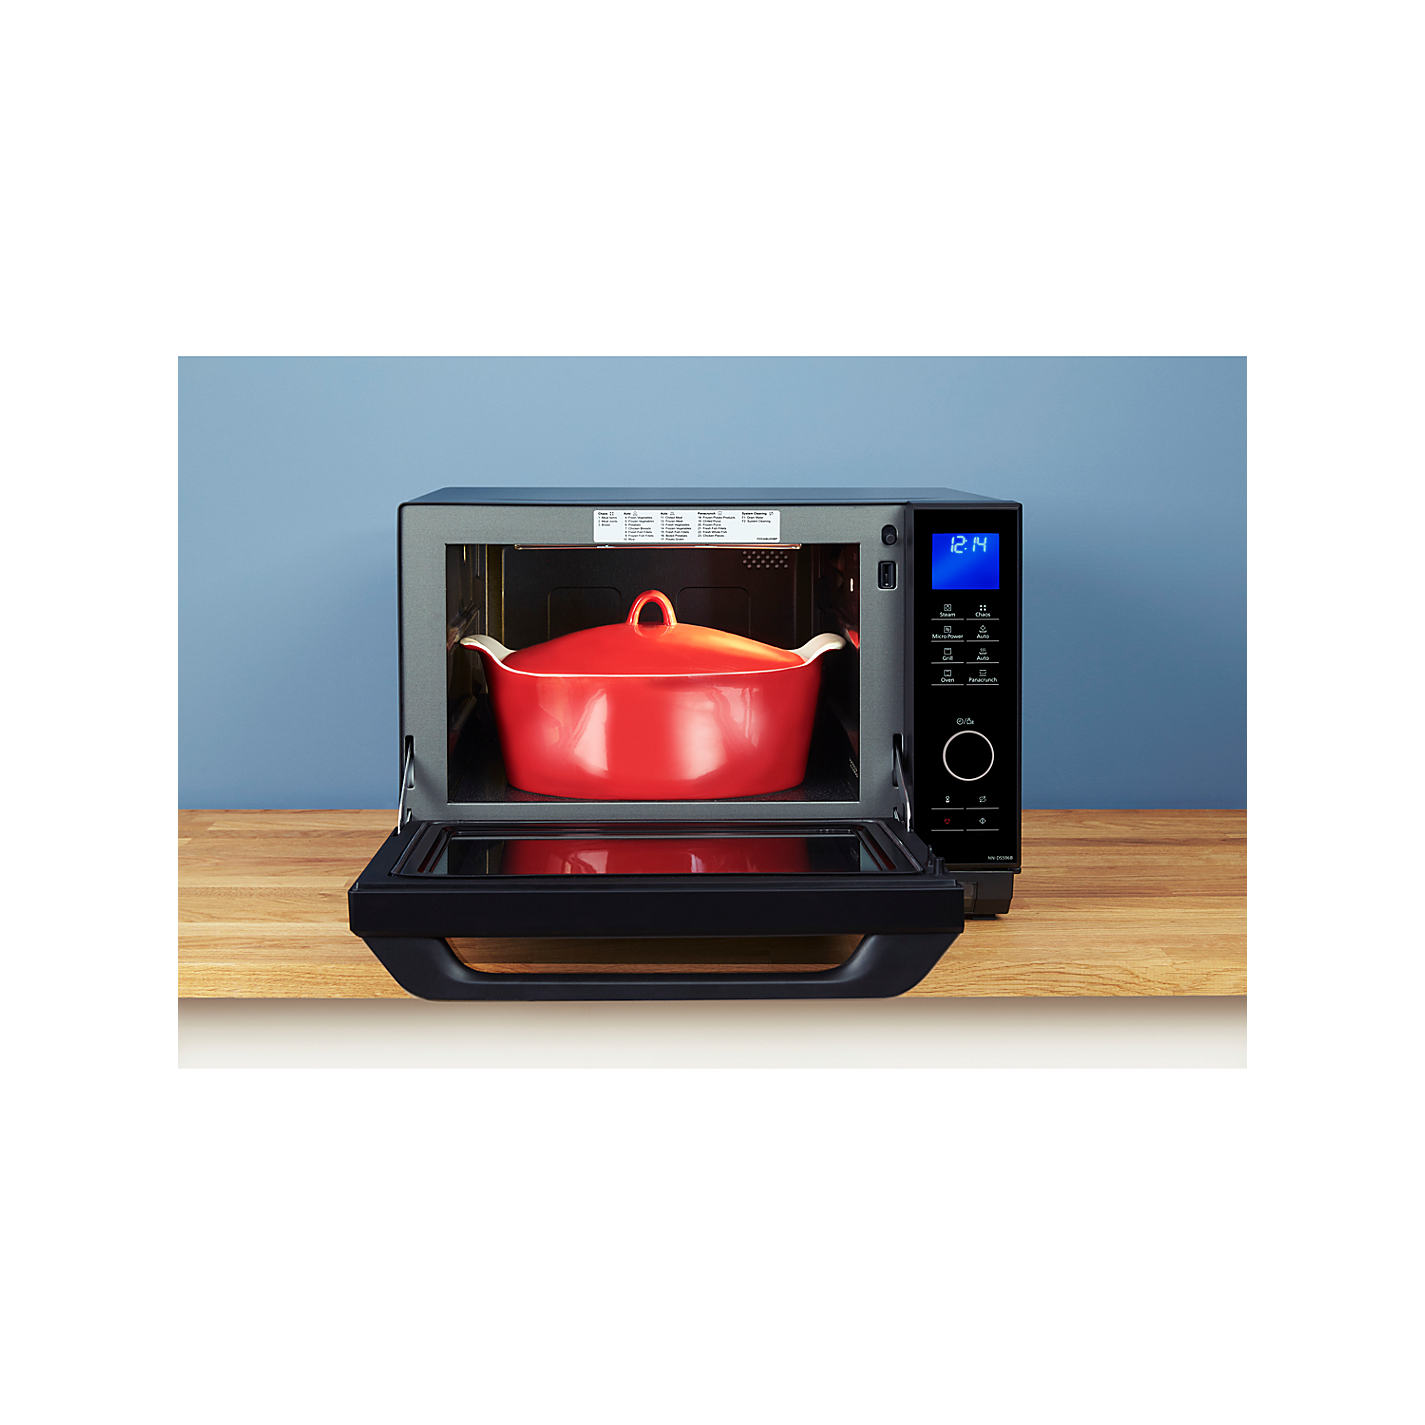 Panasonic Nn Ds596bbp Freestanding 4 In 1 Steam Combination Microwave With Grill